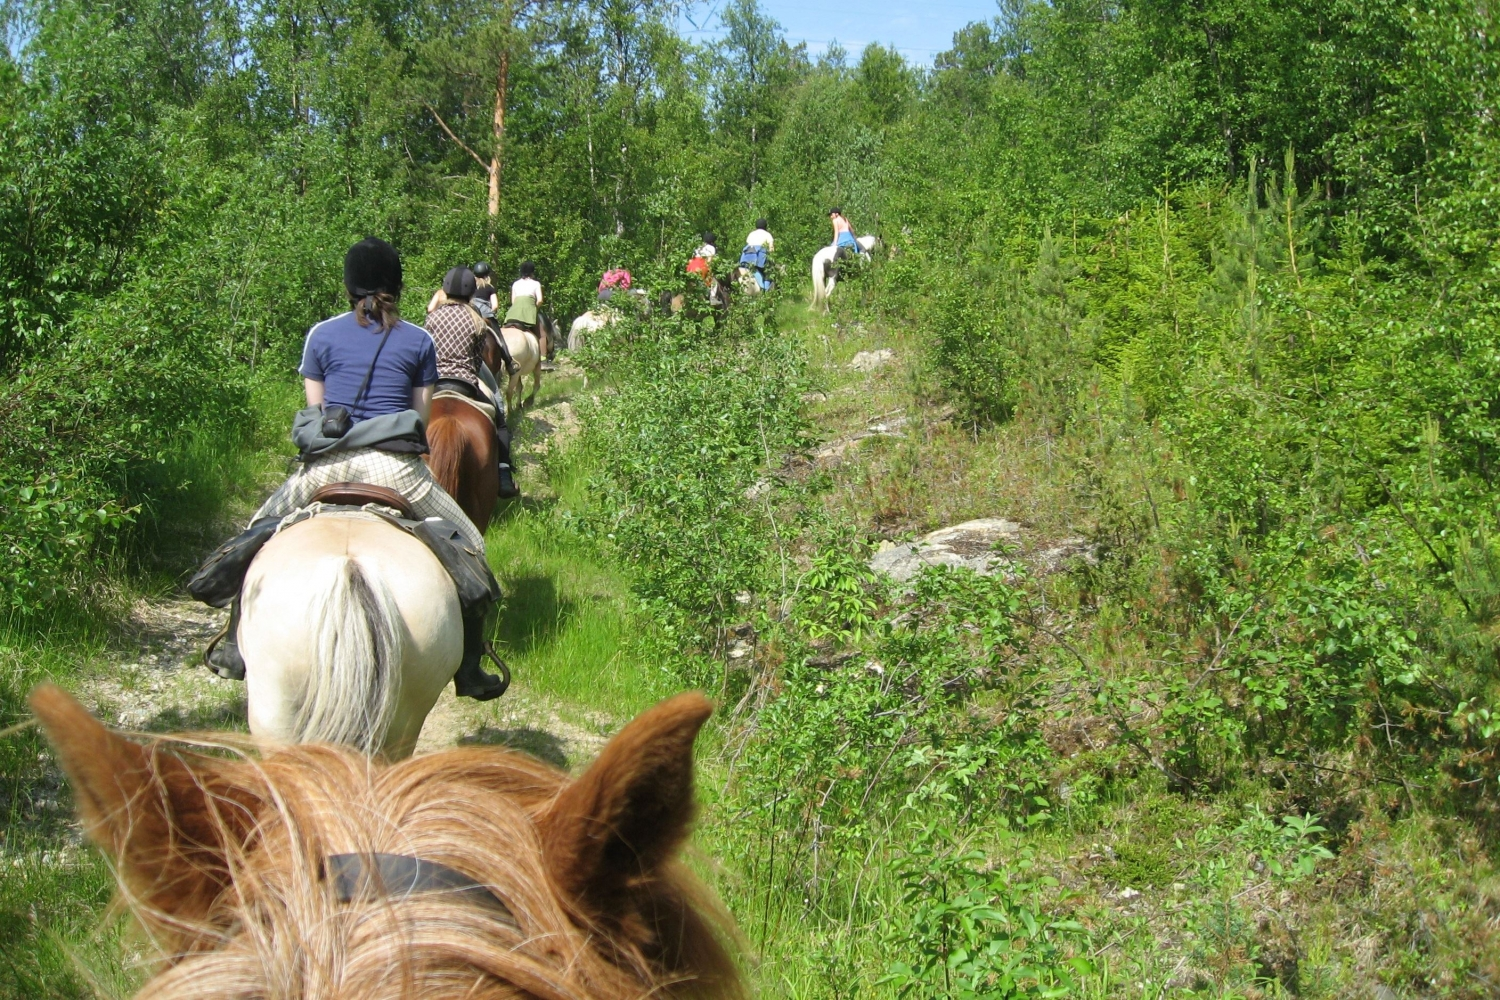 horseback riding in the woods